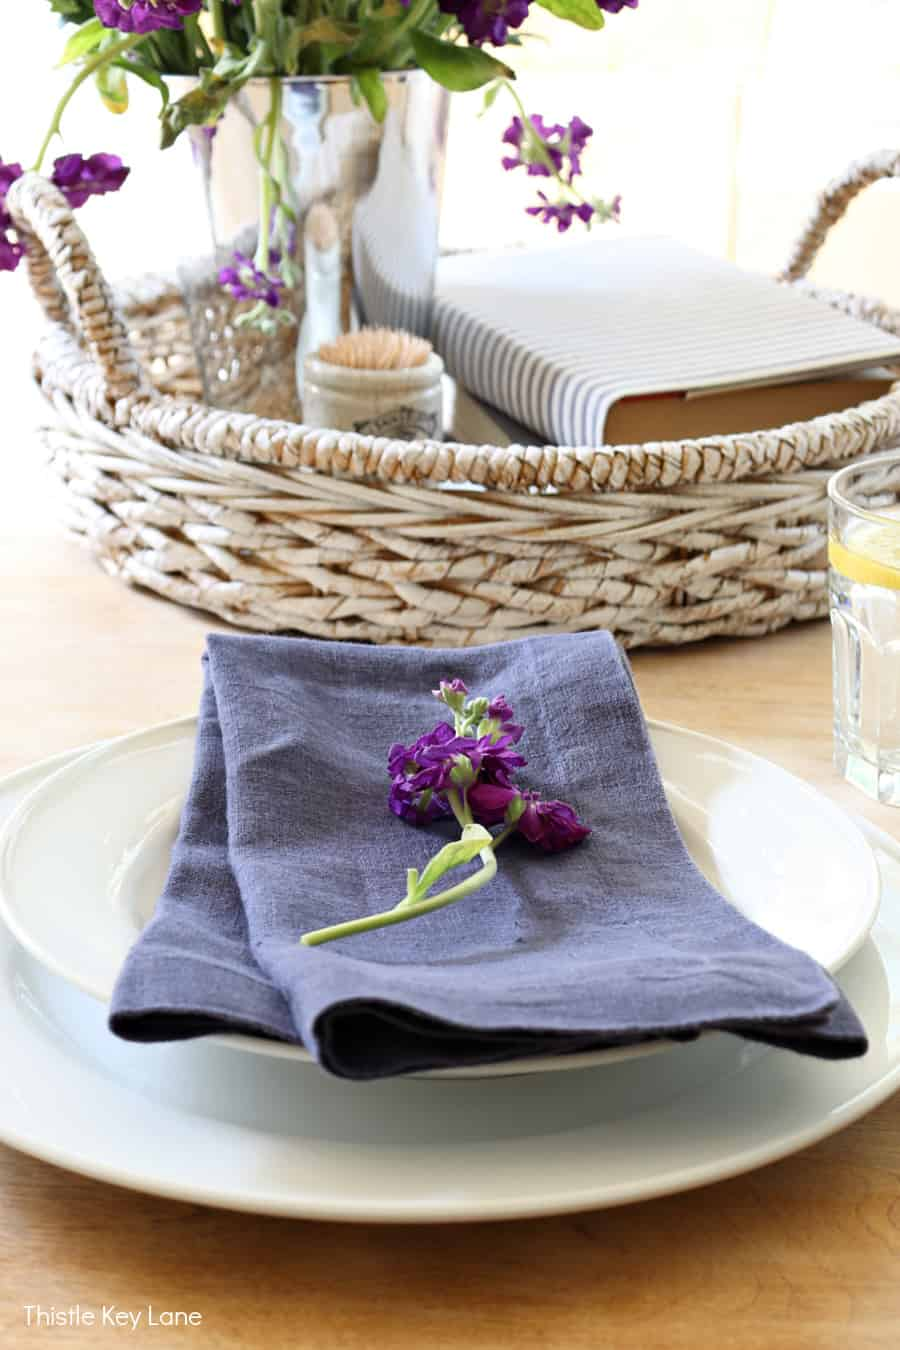 Indigo napkin with a flower on top. Organizing Napkins And Linens.